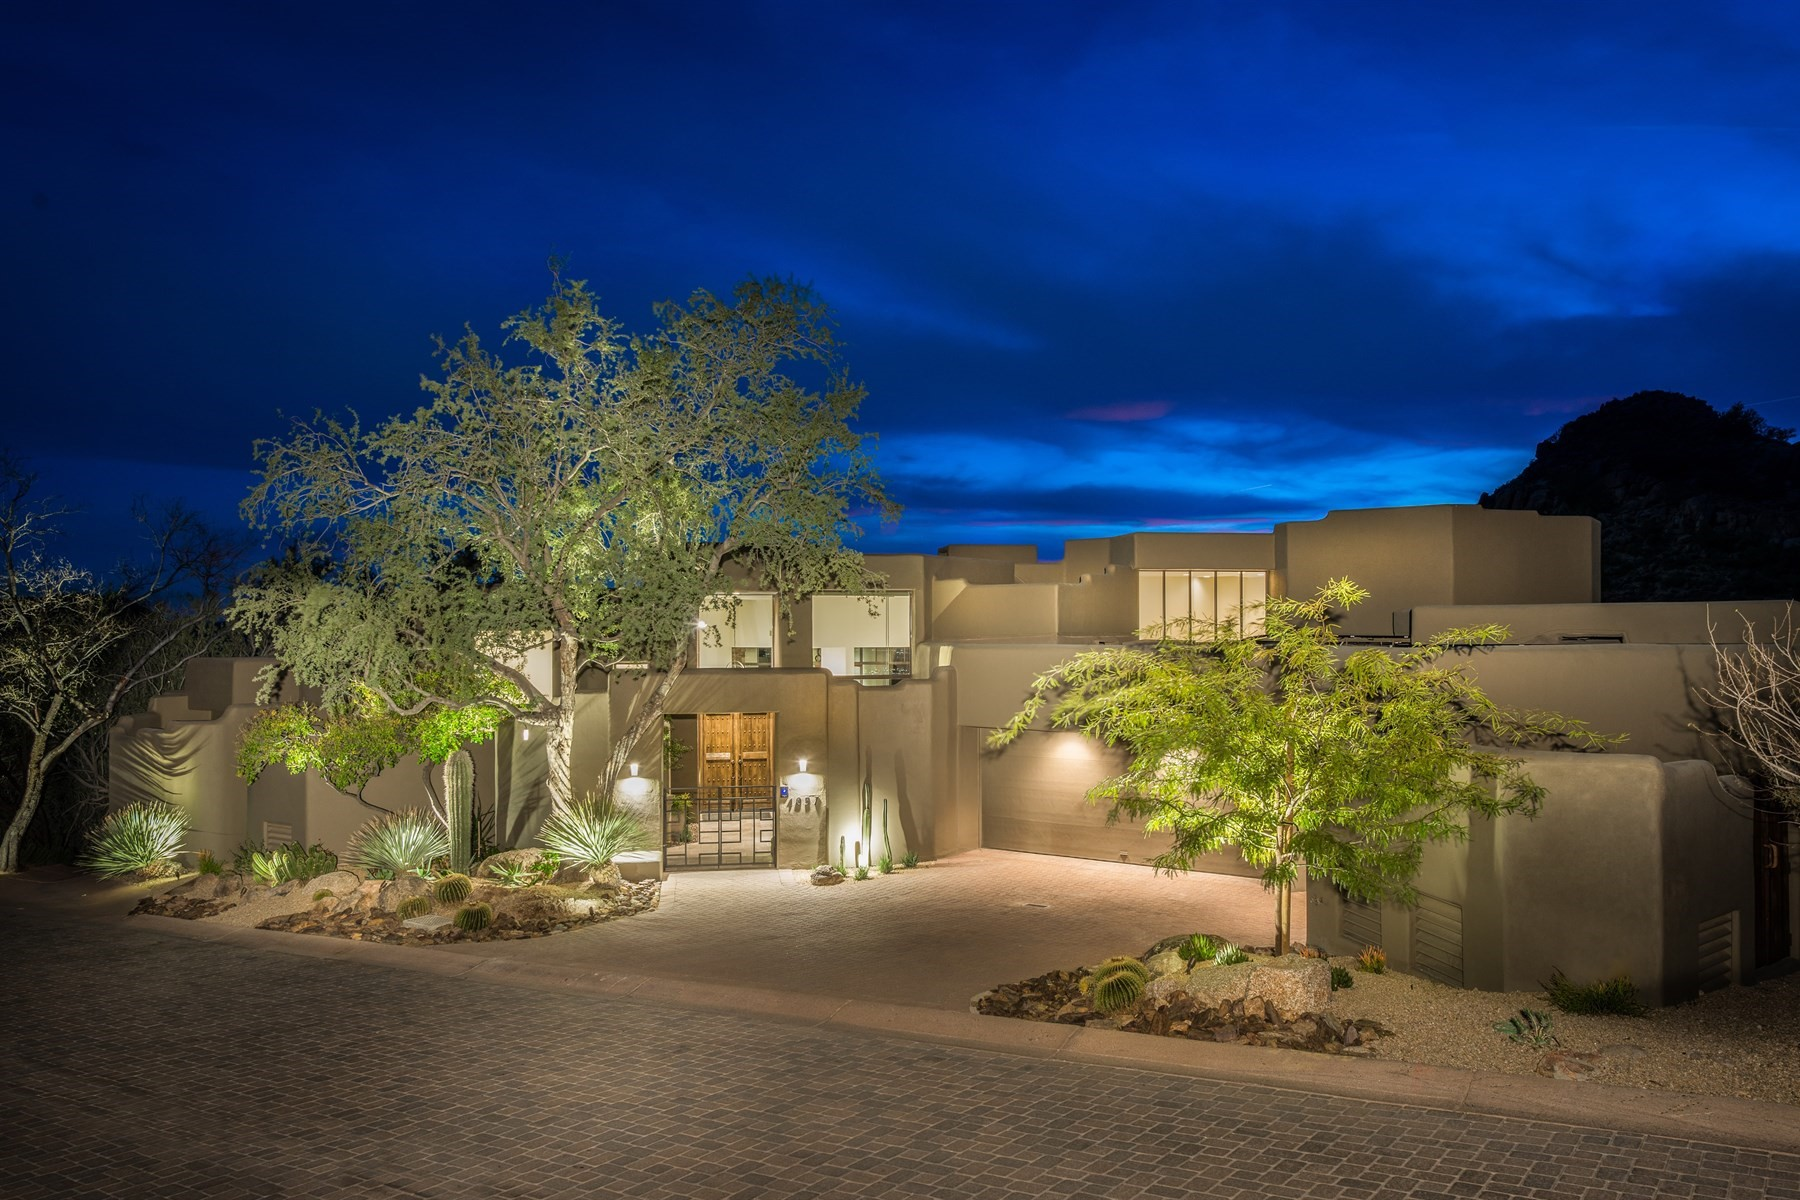 Maison unifamiliale pour l Vente à Spectacular contemporary home in the Hillside Villa Estates at Desert Highlands 10040 E Happy Valley Rd #1037 Scottsdale, Arizona, 85255 États-Unis